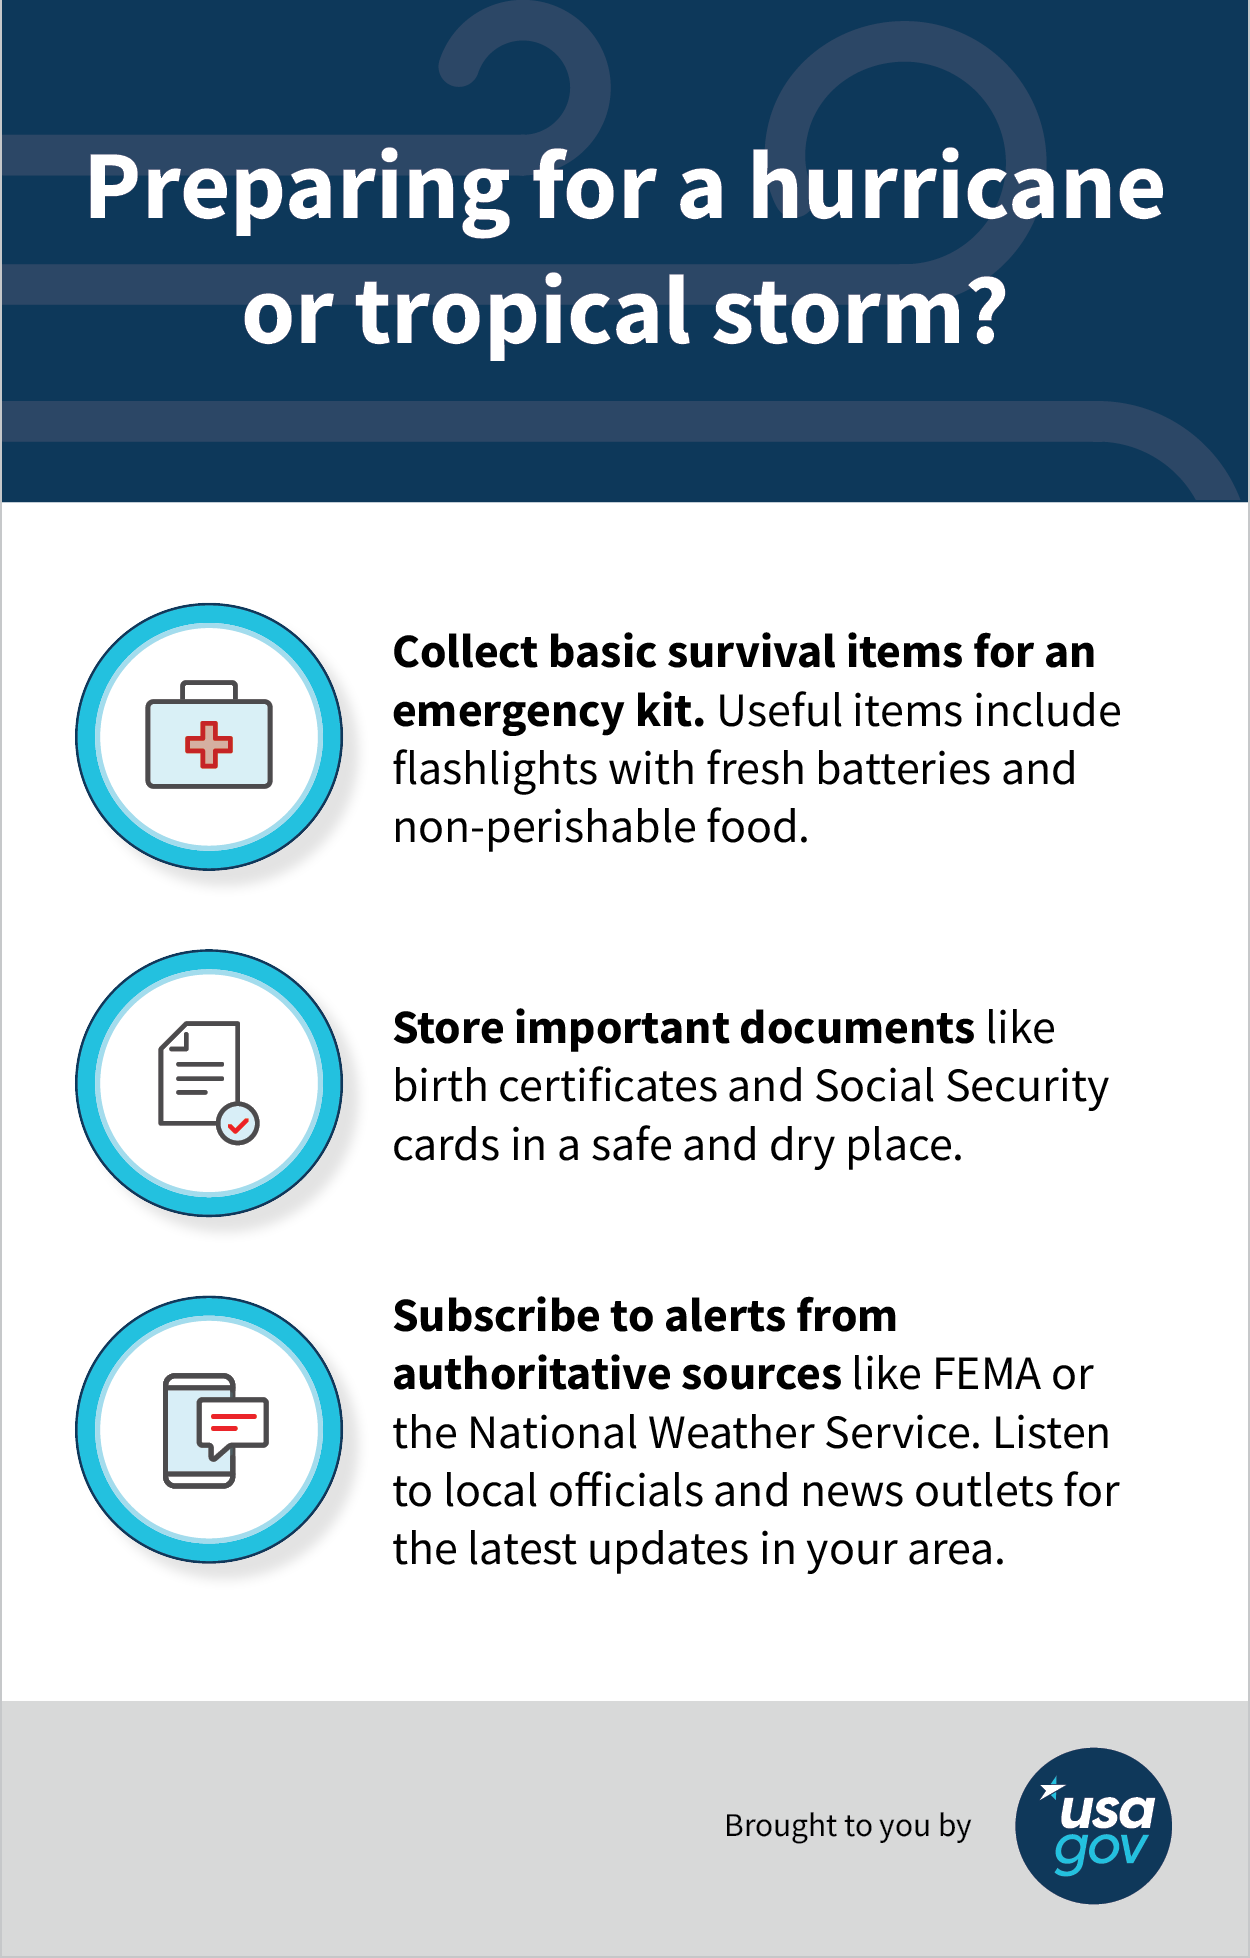 Seven Tips to Stay Prepared for the 2020 Hurricane Season